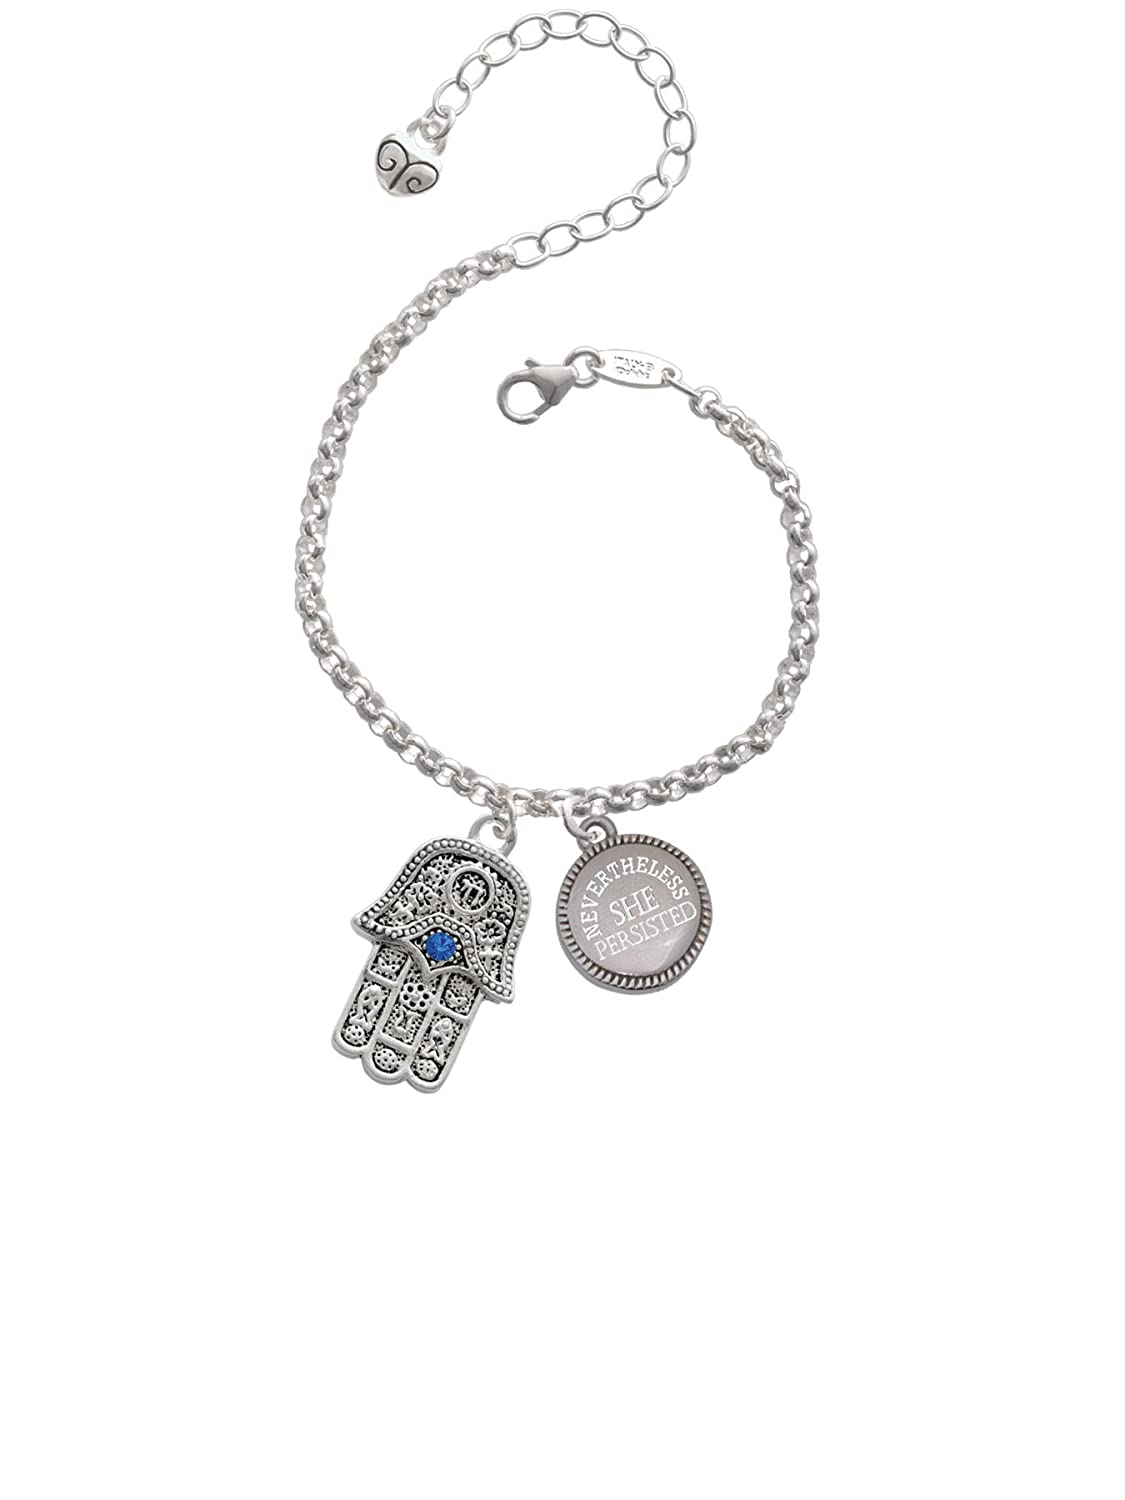 Delight Jewelry Hamsa Hand with Blue Crystal Nevertheless She Persisted Engraved Bracelet